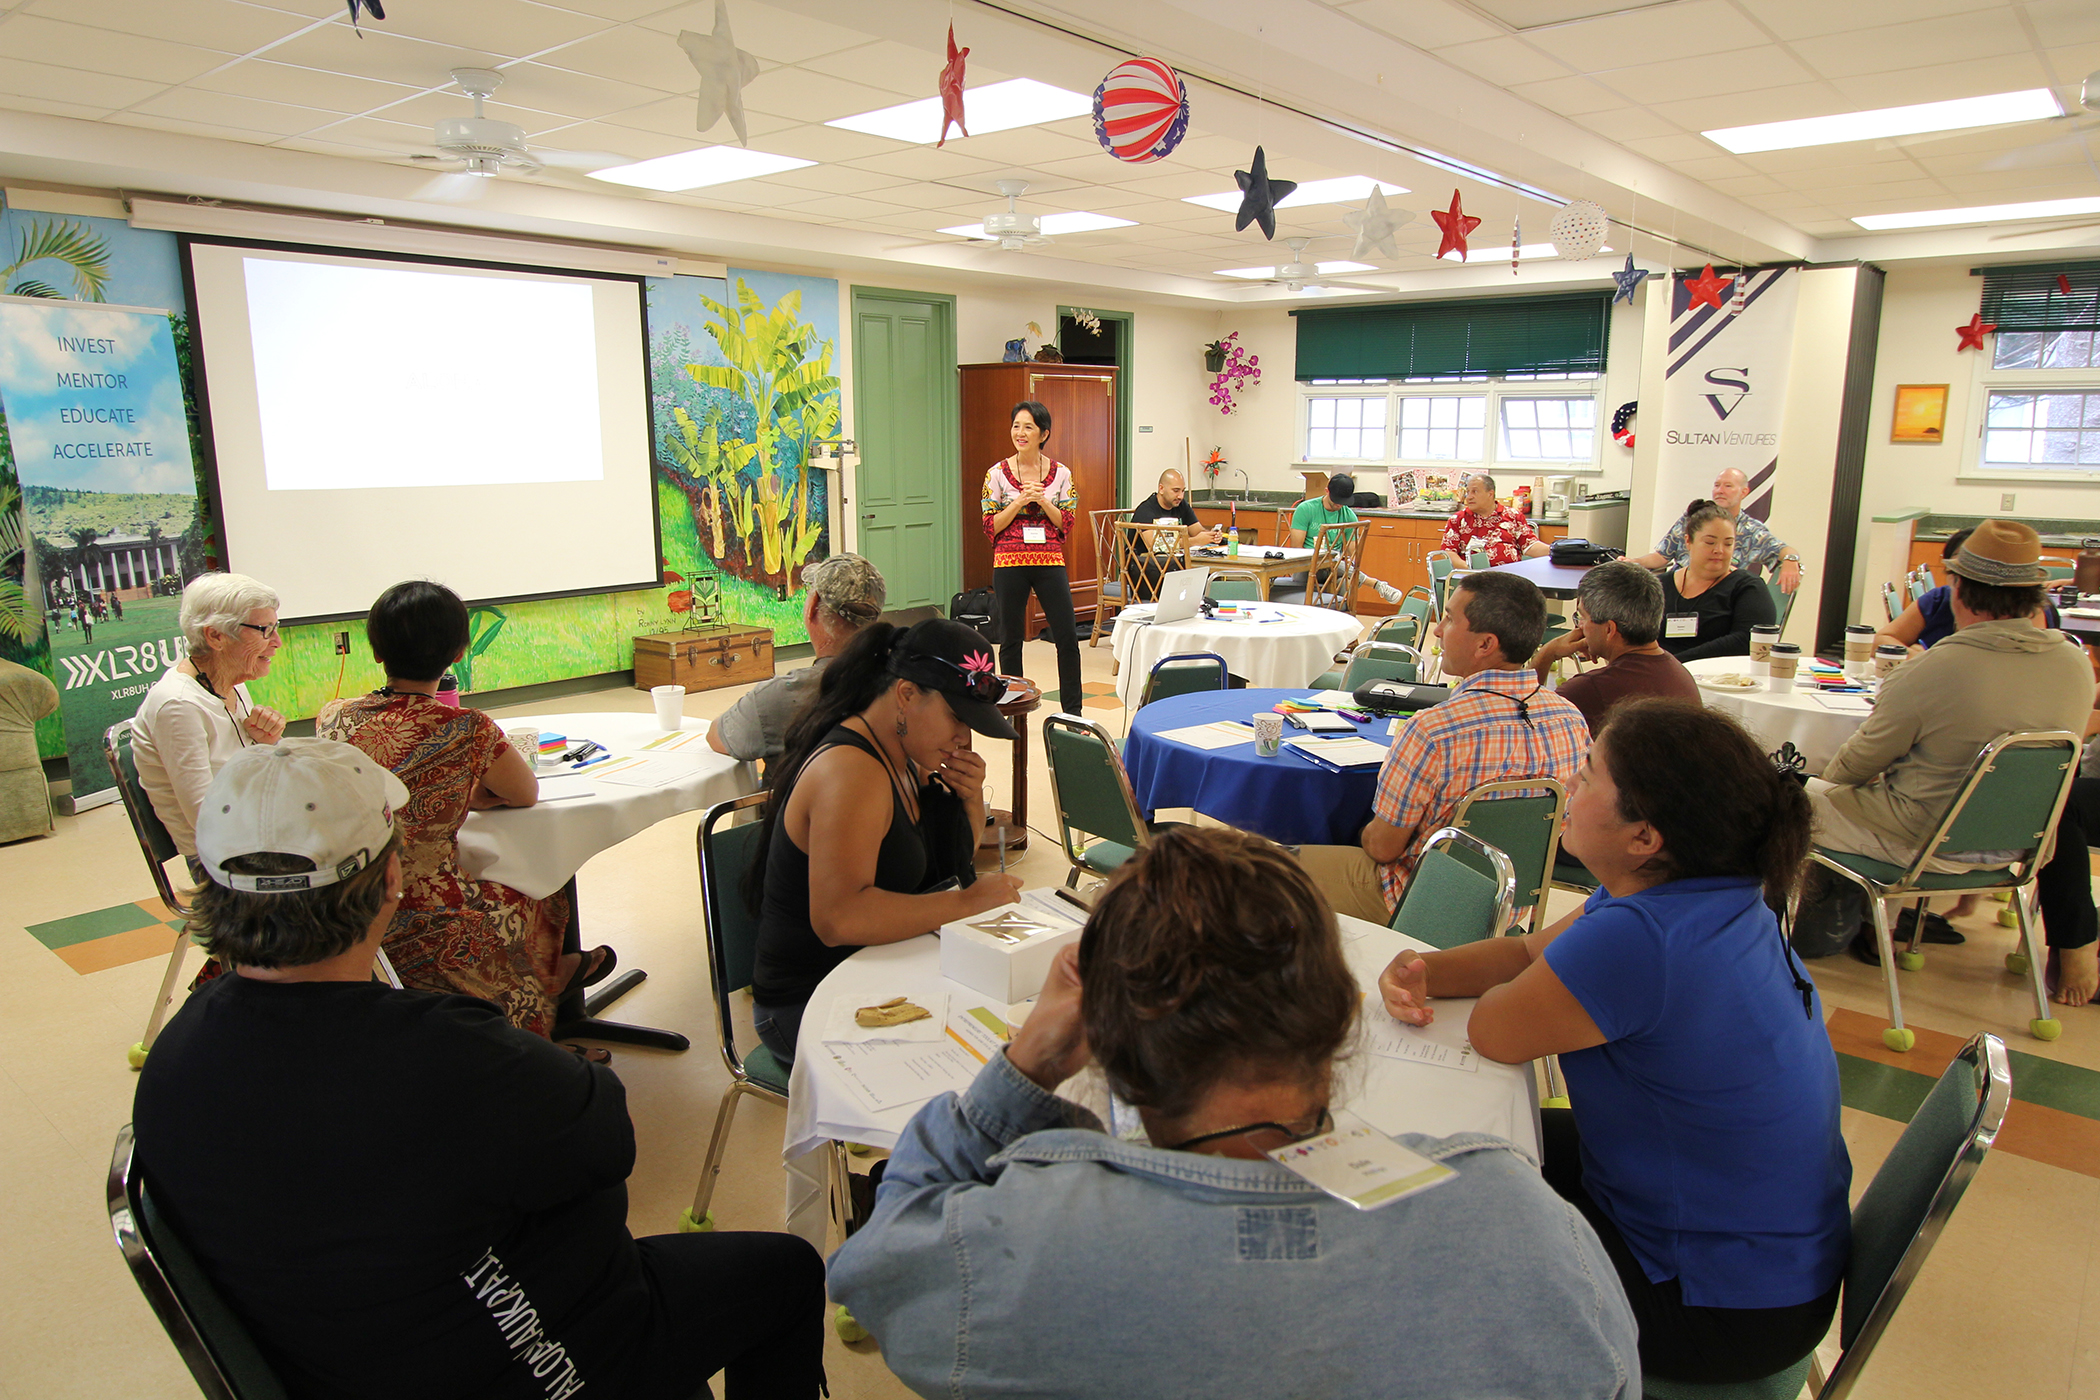 Maui Economic Development Board continues to help small businesses establish strong systems, processes, tools, and best practices to build a solid foundation for success. Pictured: MEDB's Entrepreneurs' Toolkit Bootcamp held on June 25 and 26.